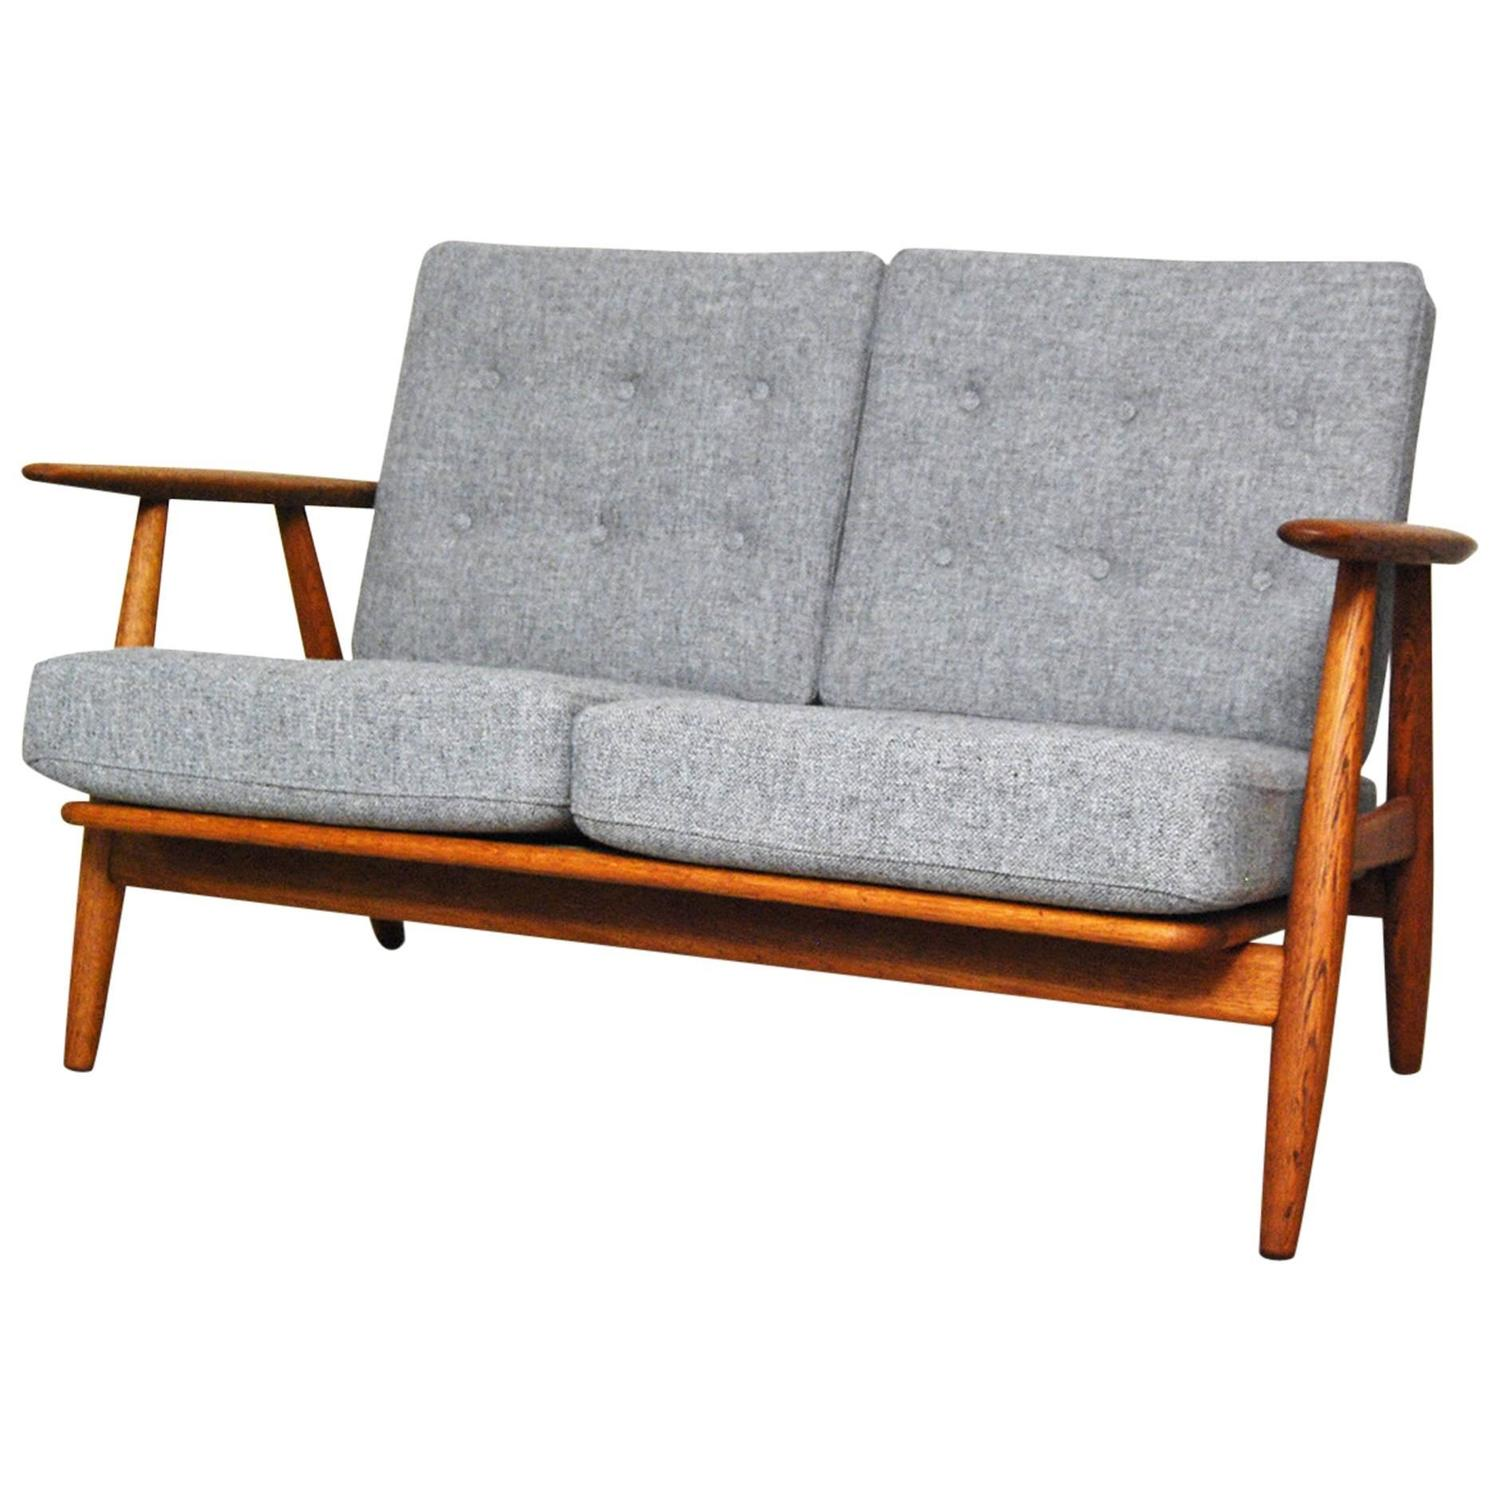 hans wegner ge 240 cigar sofa at 1stdibs. Black Bedroom Furniture Sets. Home Design Ideas